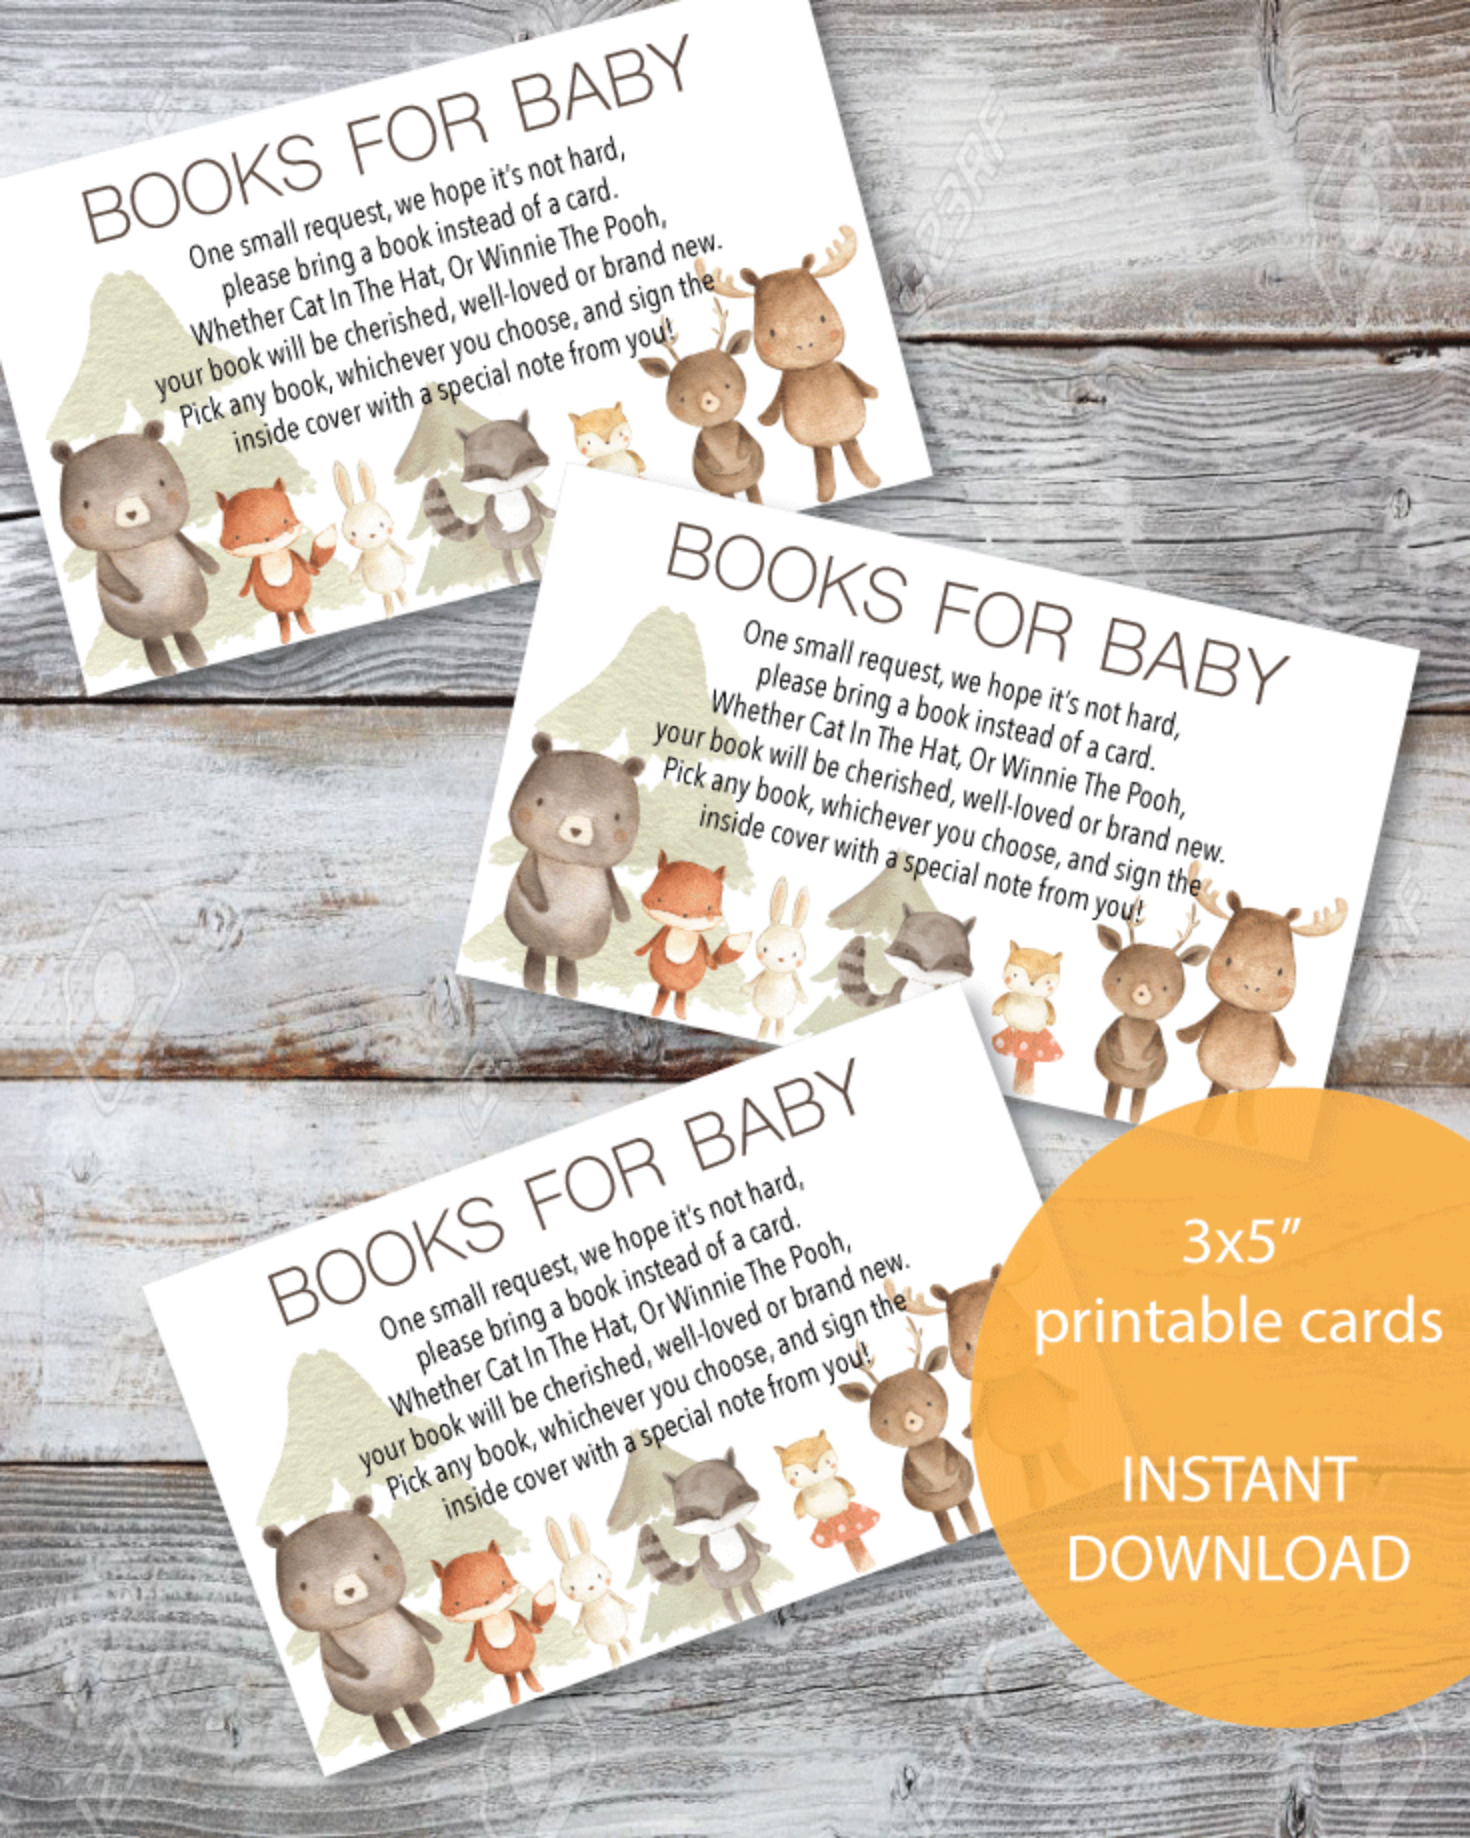 Printable Books For Baby Cards - Woodland Watercolor Animals Theme